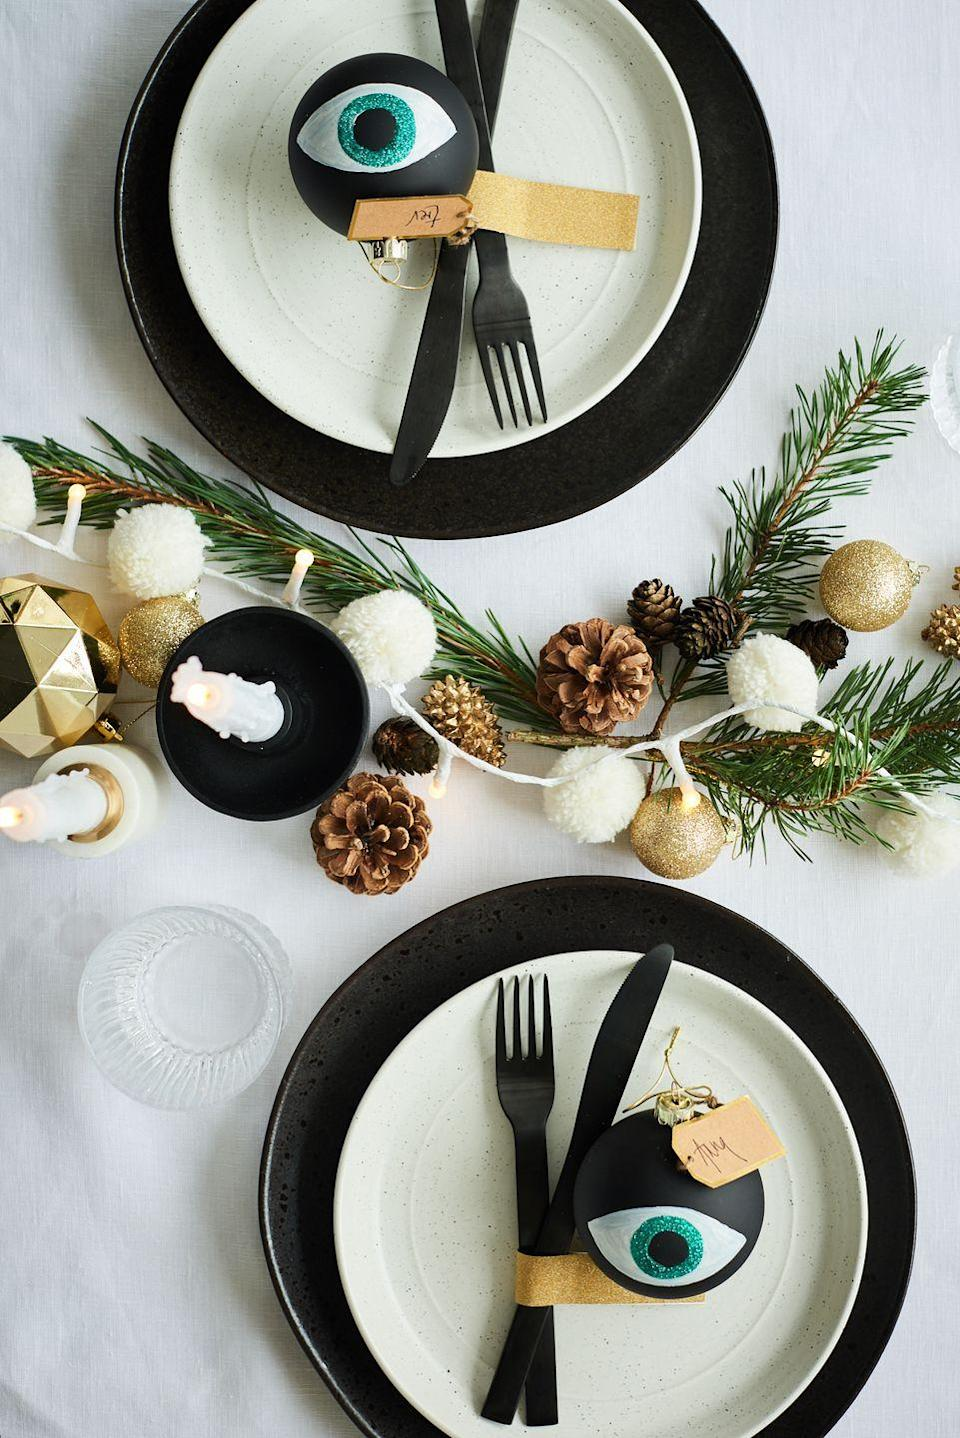 How To Decorate And Style Your Christmas Table Like A Pro